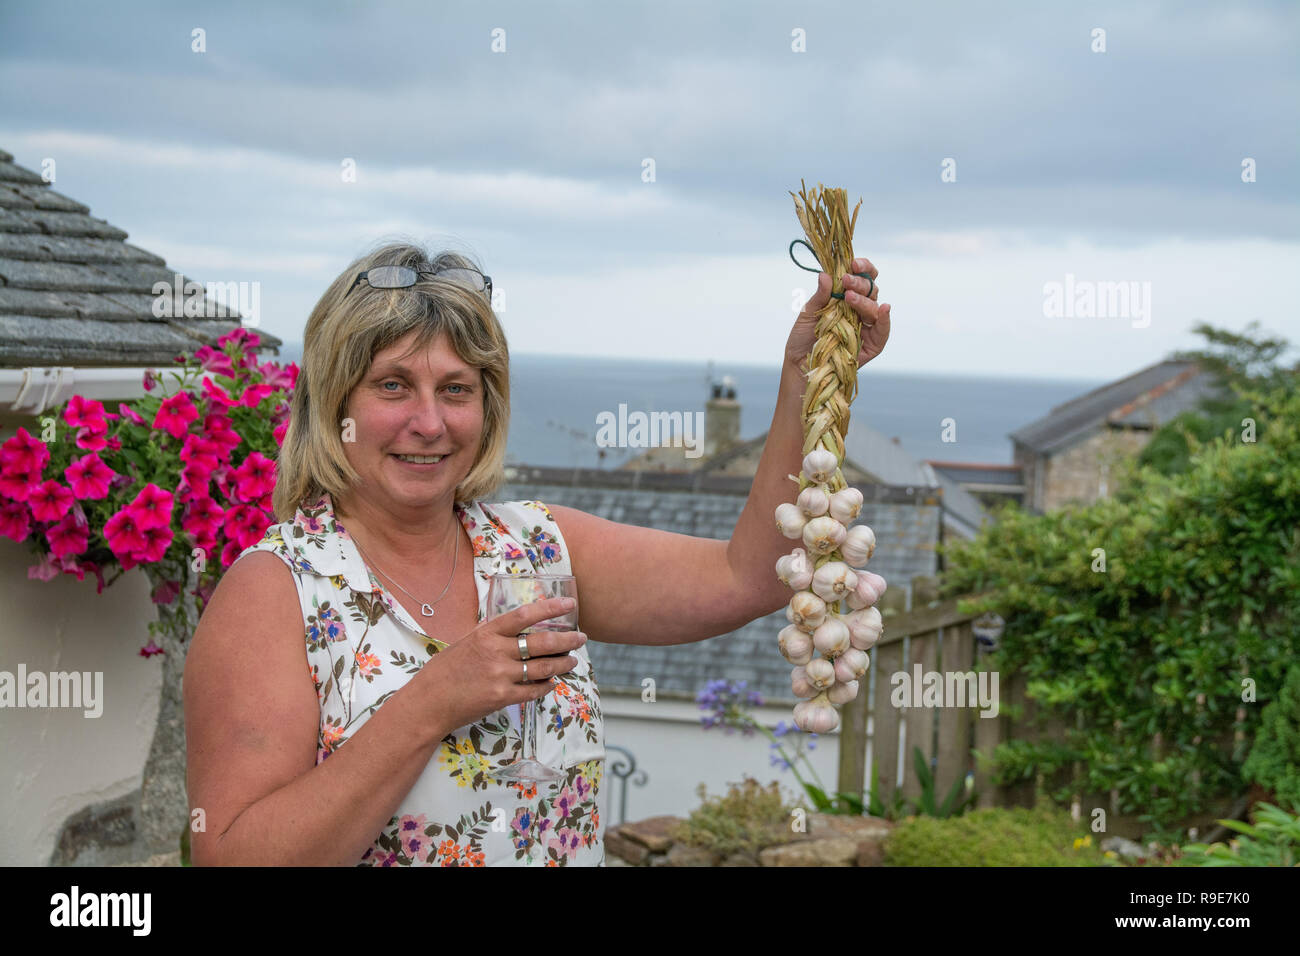 Woman holding up a string of plaited garlic that she has just made holding a glass of wine - Stock Image